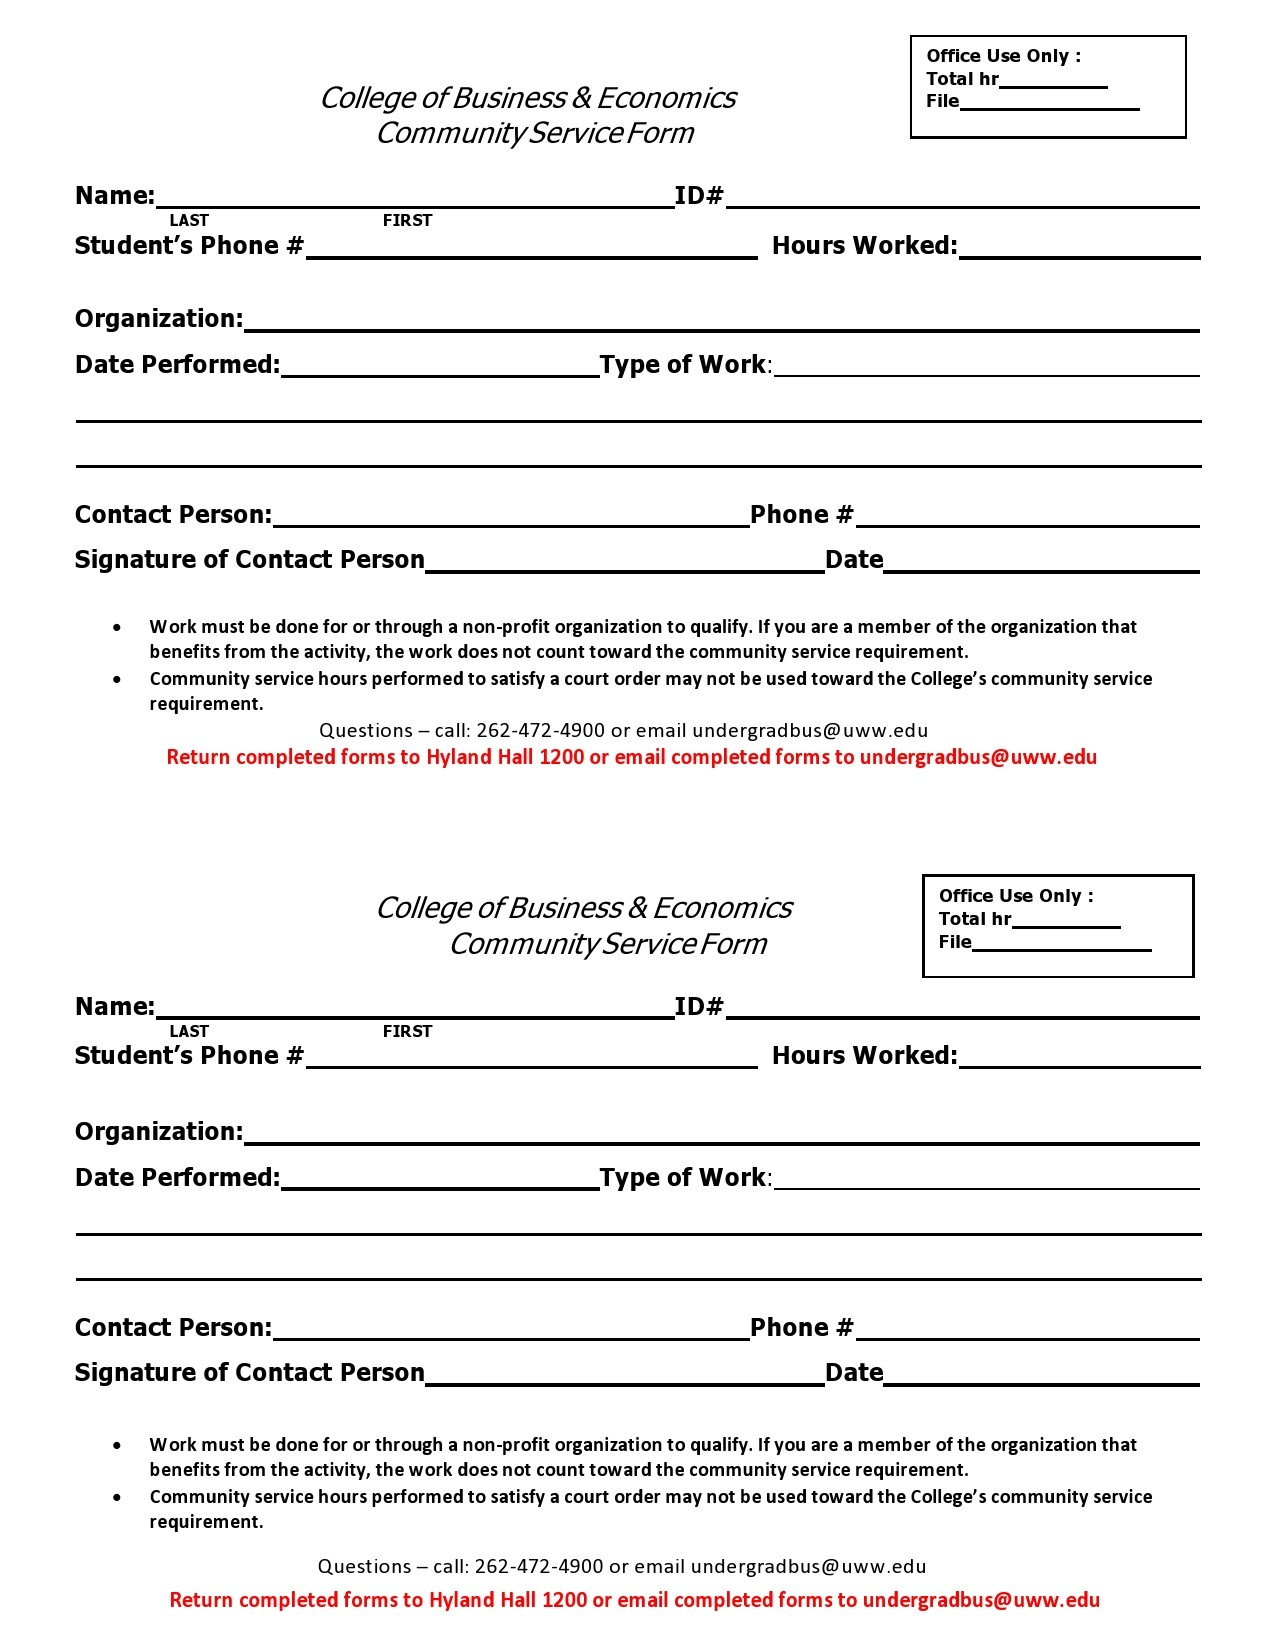 Free community service form 30